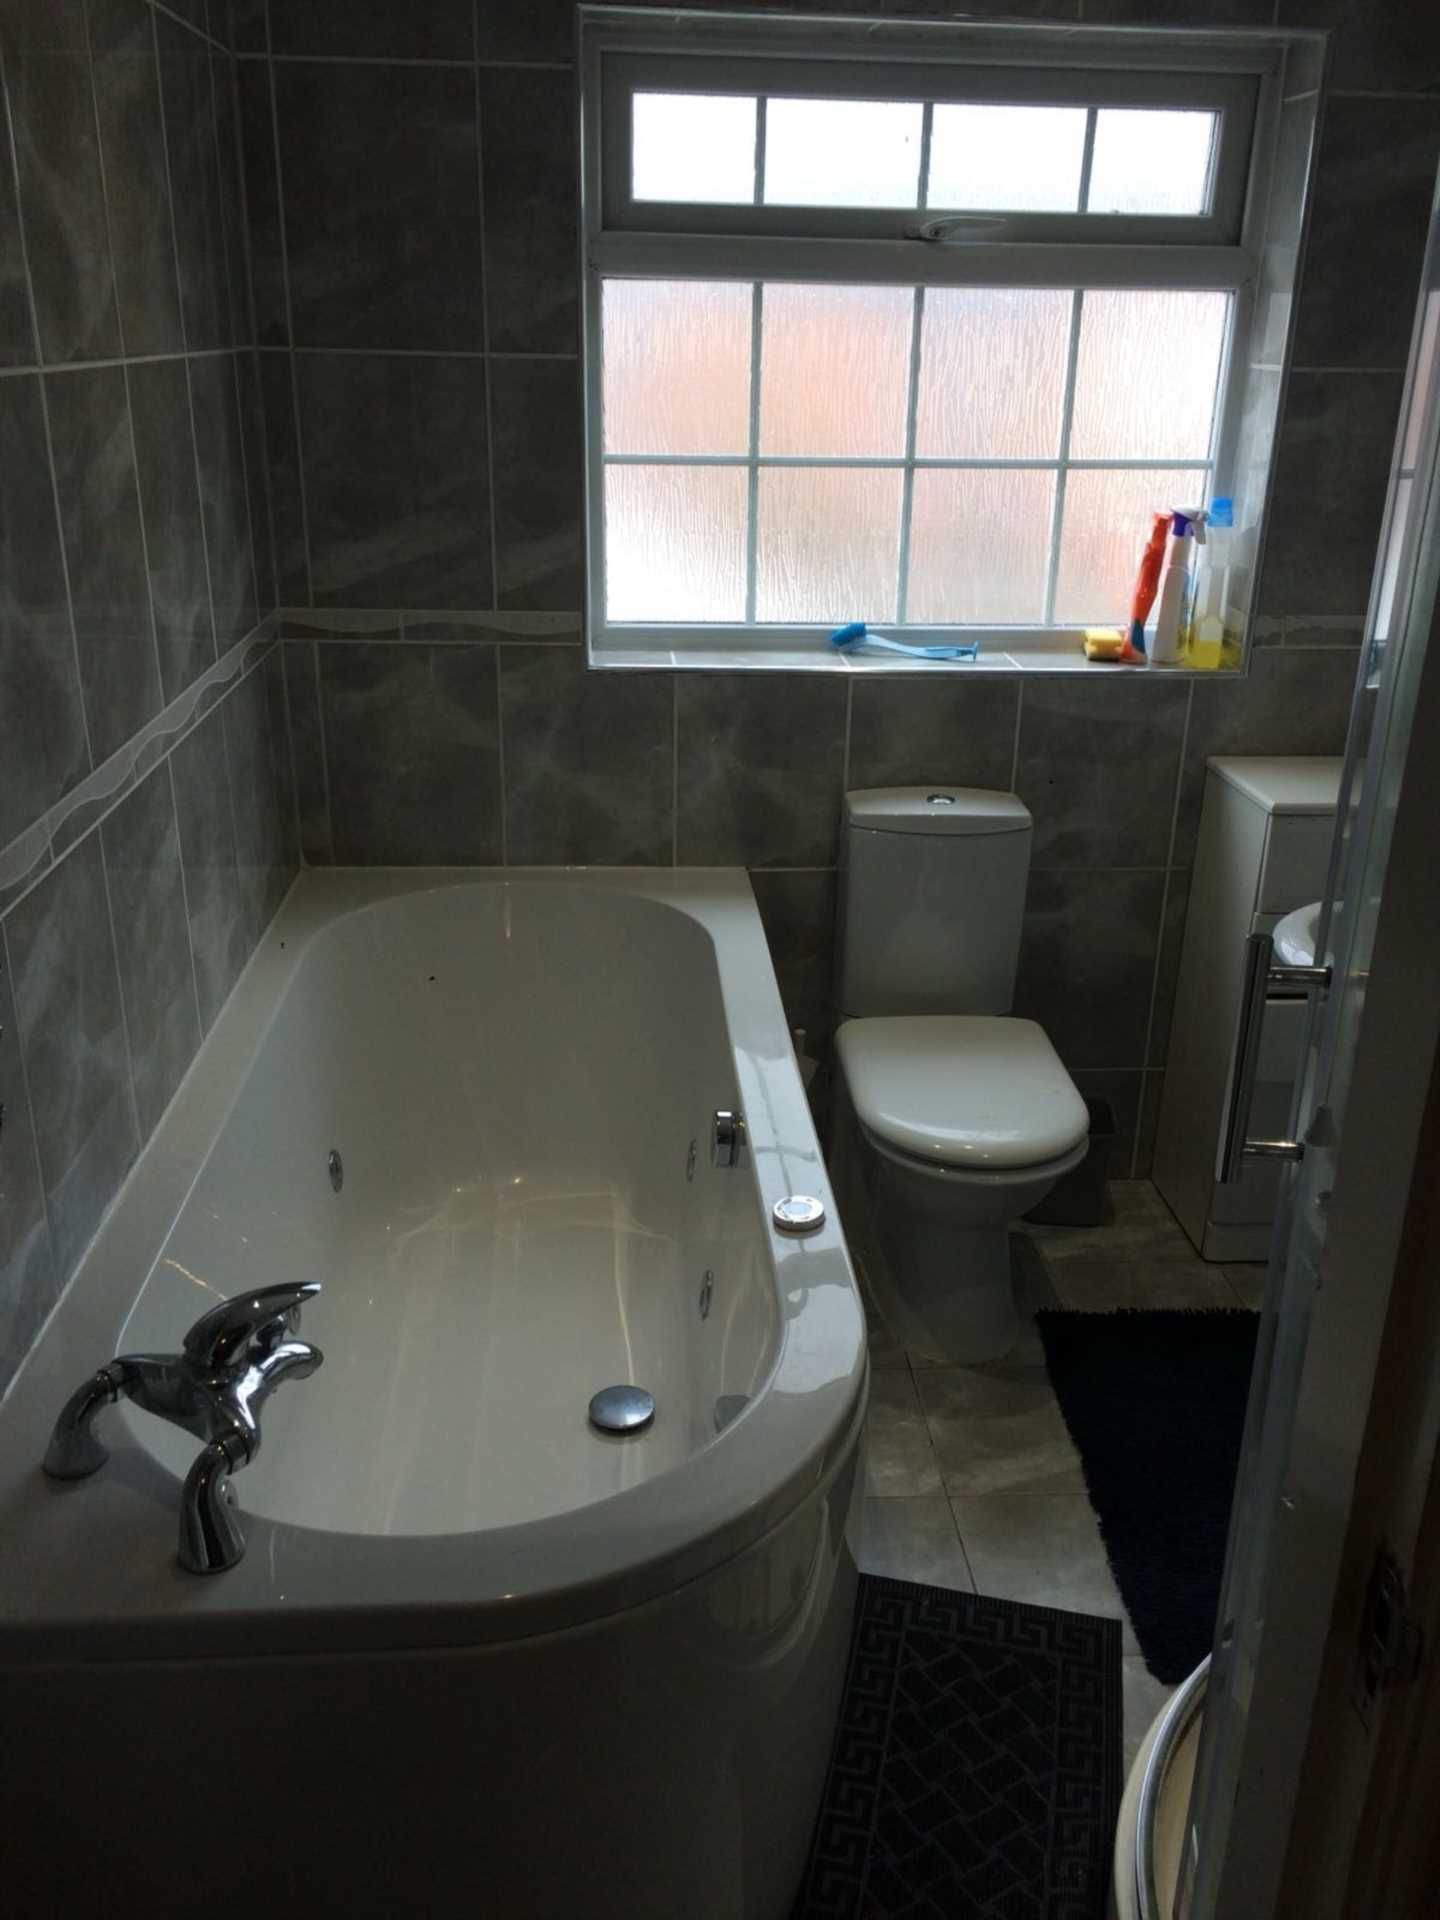 Room 6, Queensland Avenue - 5 bedroom 2 bathroom student home fully furnished, WIFI & bills included - NO FEES, Image 12